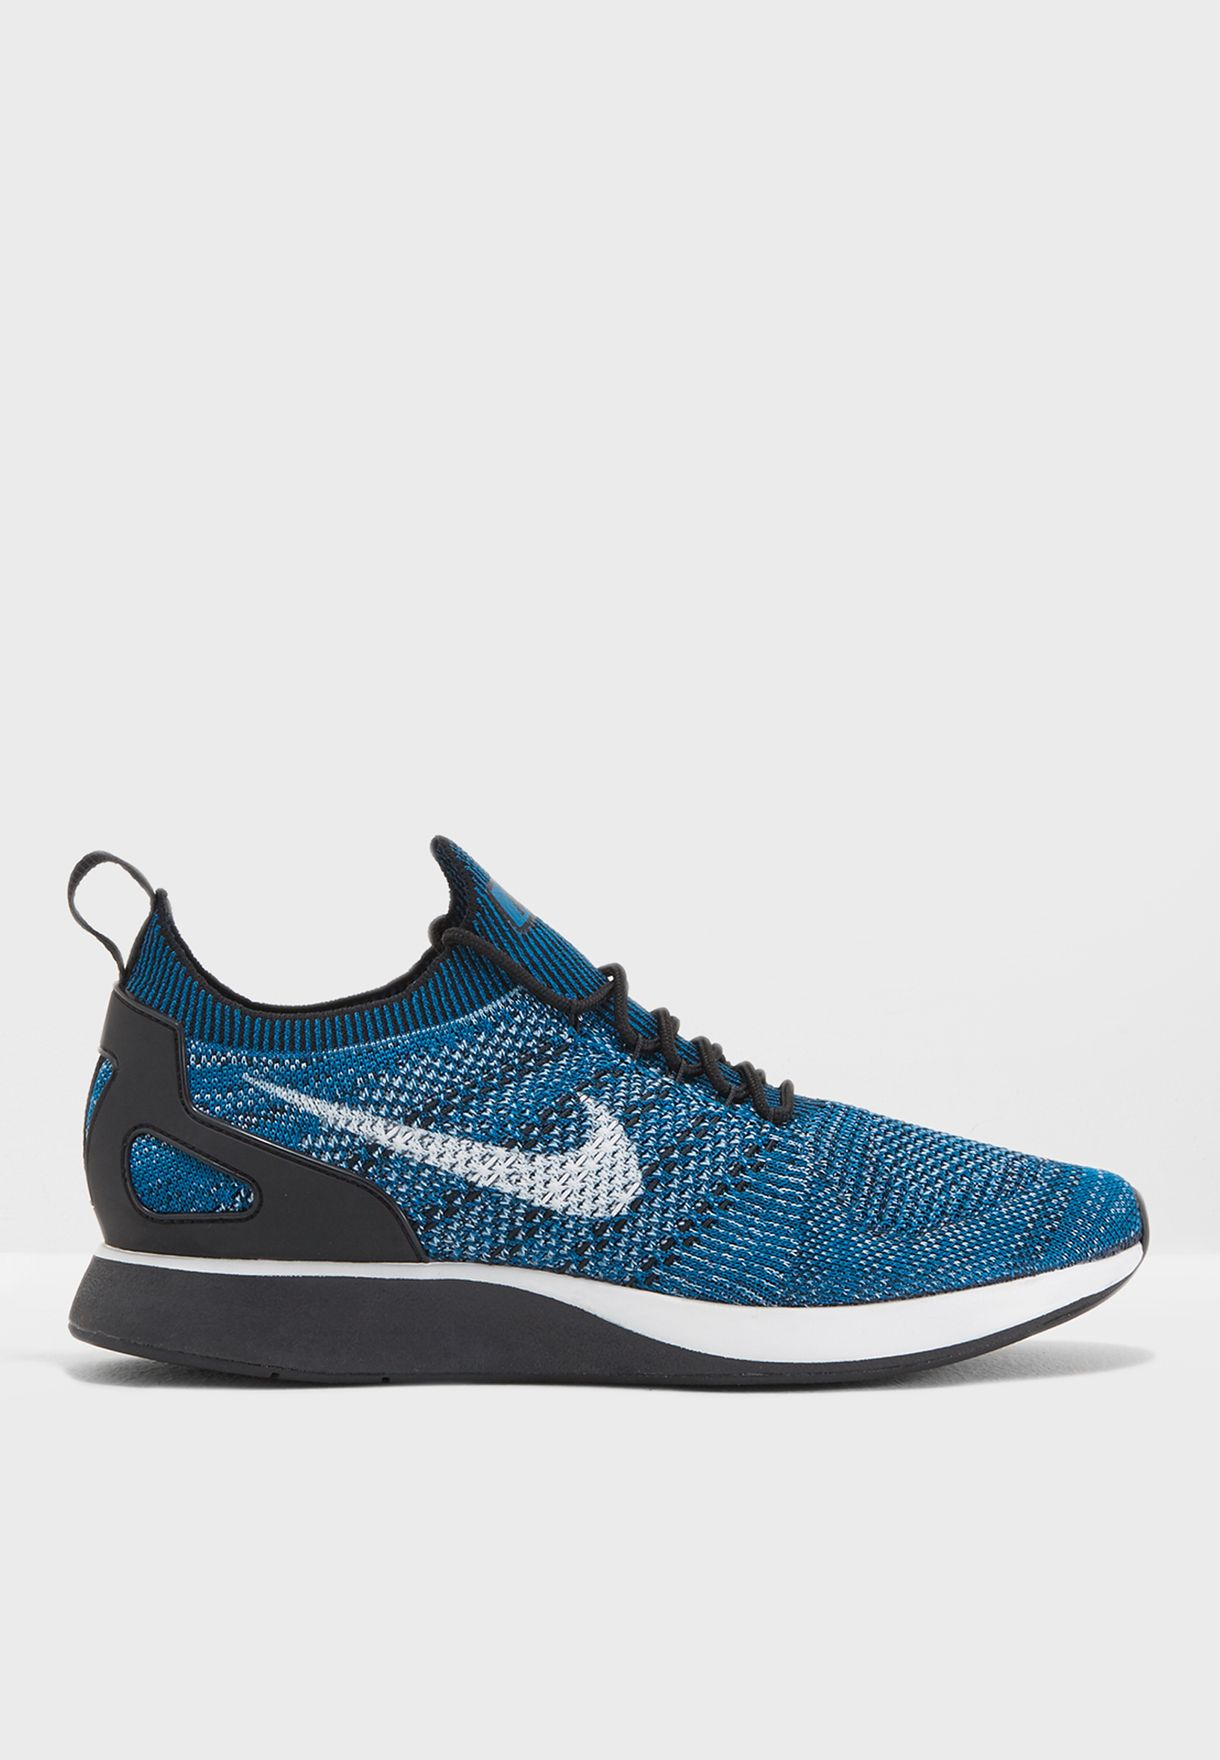 Shop Nike blue Air Zoom Mariah Flyknit Racer 918264-300 for Men in ... 0842d44200